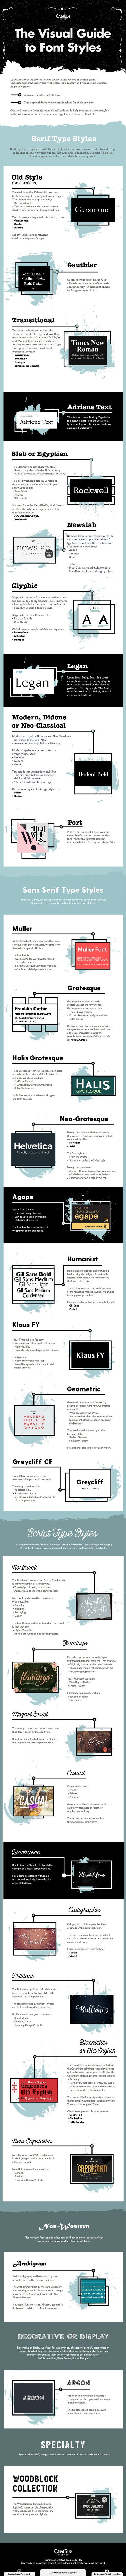 visual guide font styles